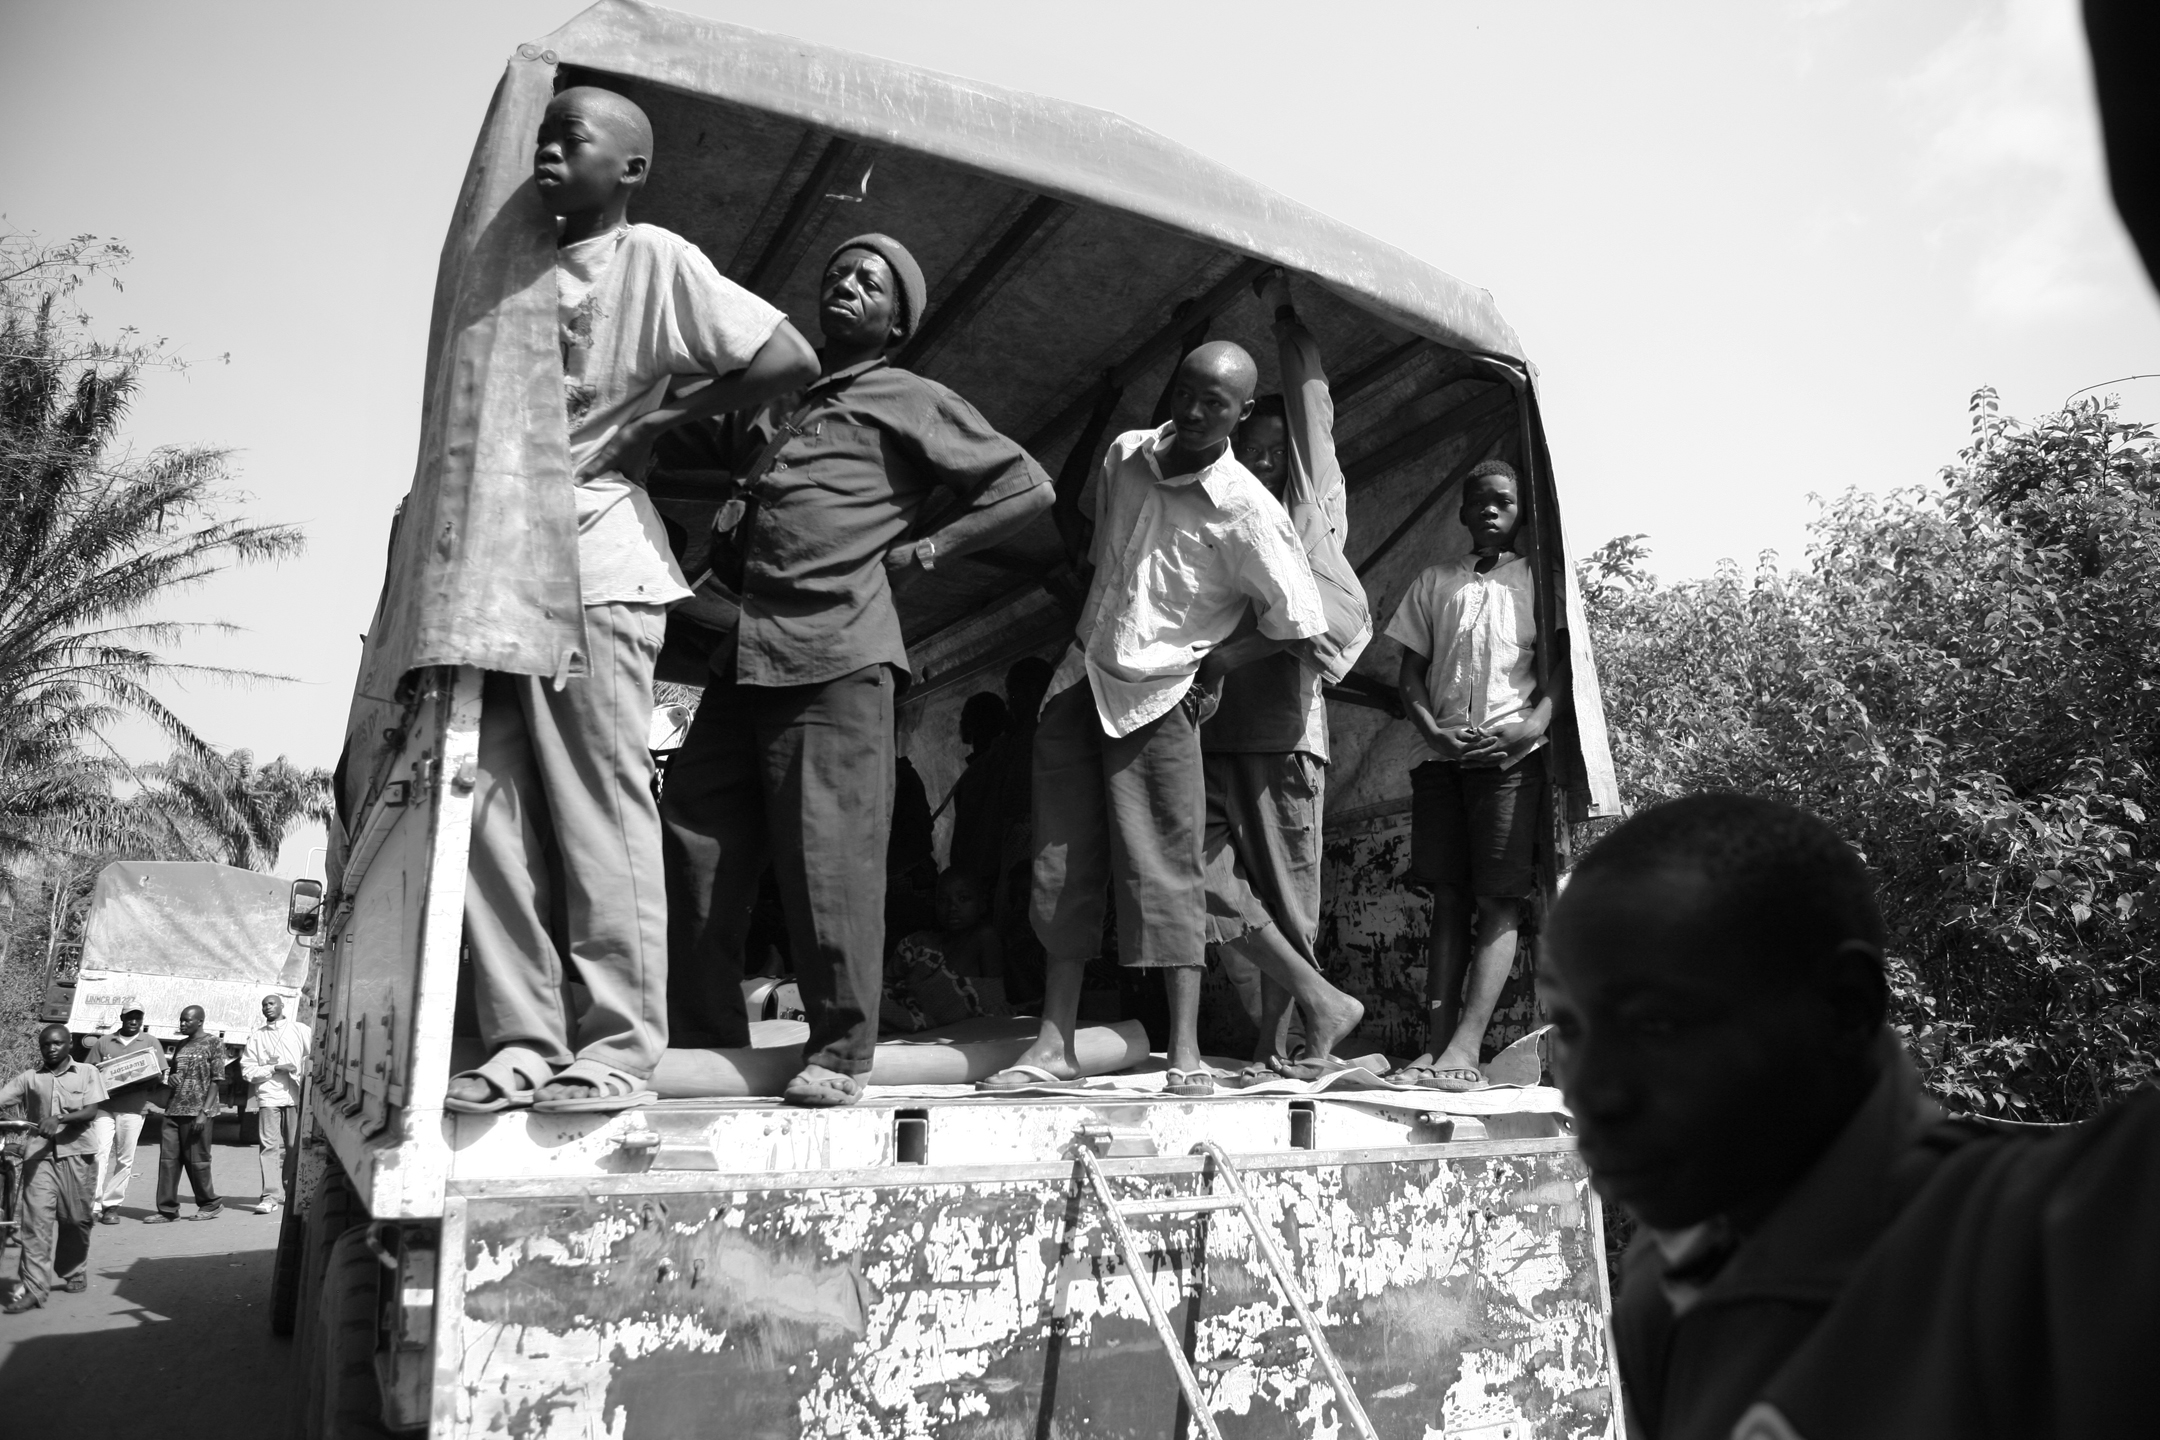 Congolese refugees travel by truck from Gangura, 6 miles from the northern border of DRC, to the newly created UNHCR site in Makpandu. Many hope to be reunited with family and friends upon arrival.